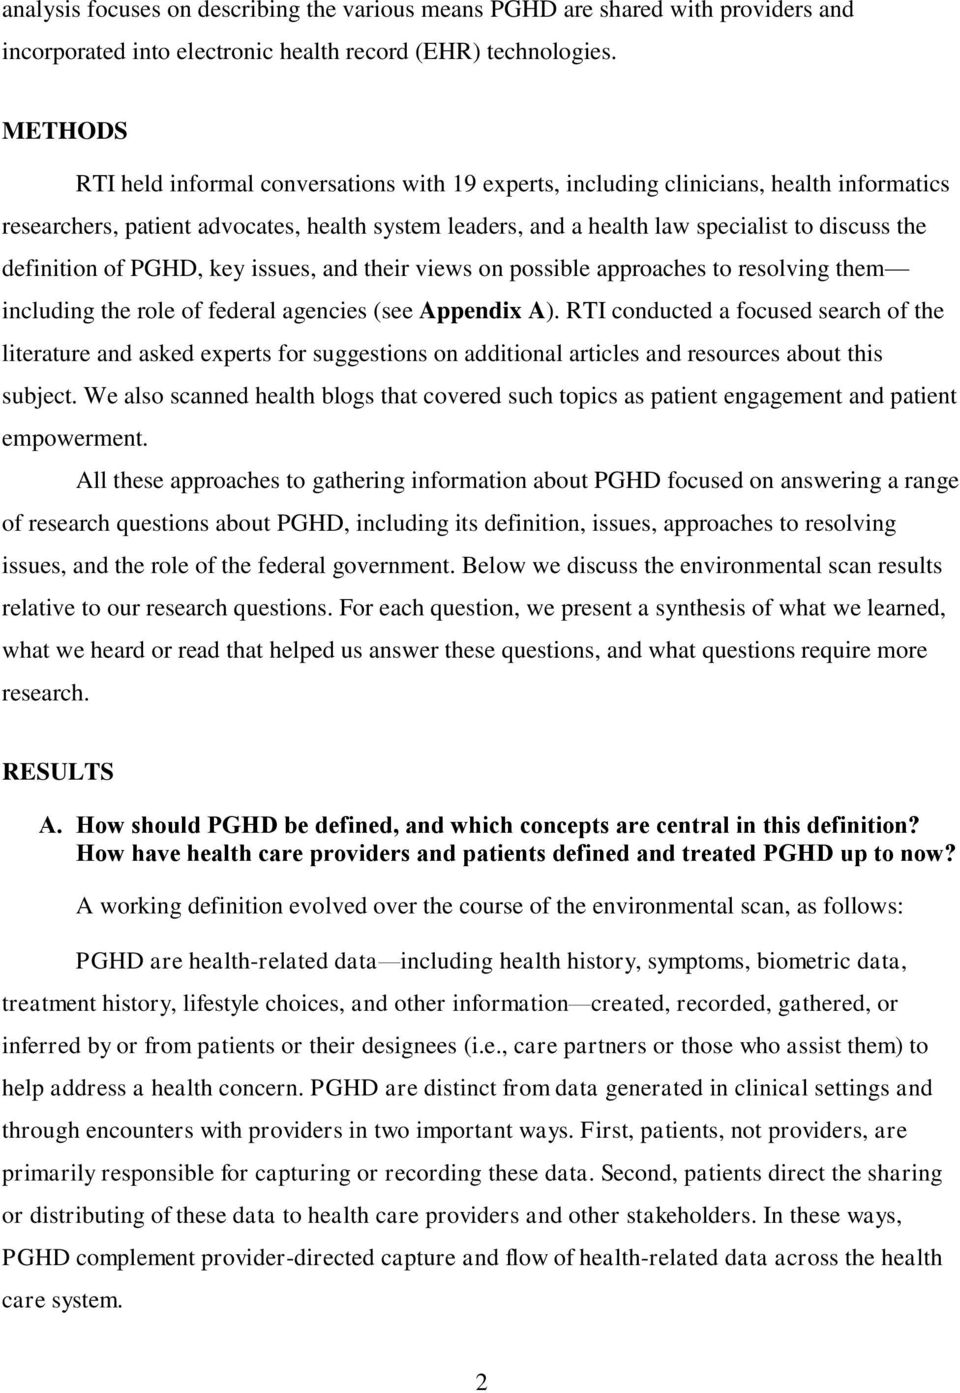 definition of PGHD, key issues, and their views on possible approaches to resolving them including the role of federal agencies (see Appendix A).